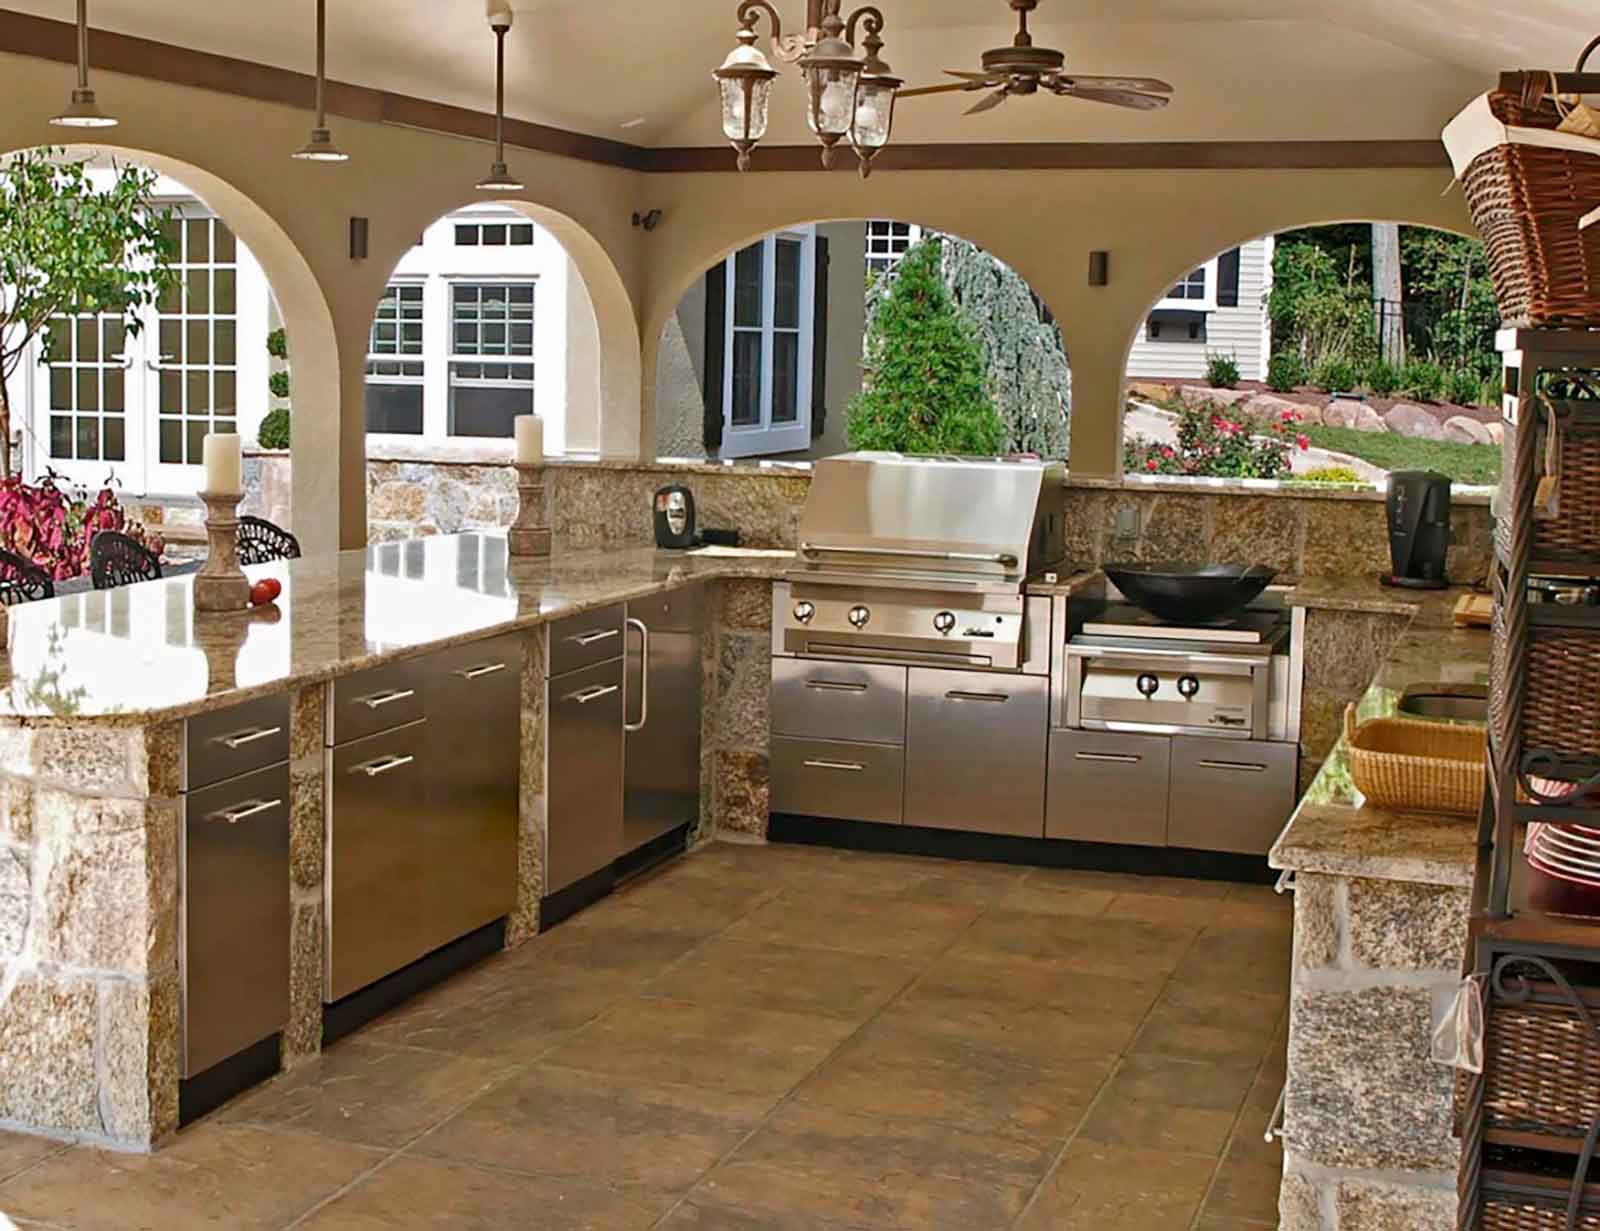 Luxury outdoor kitchen and built-in appliances